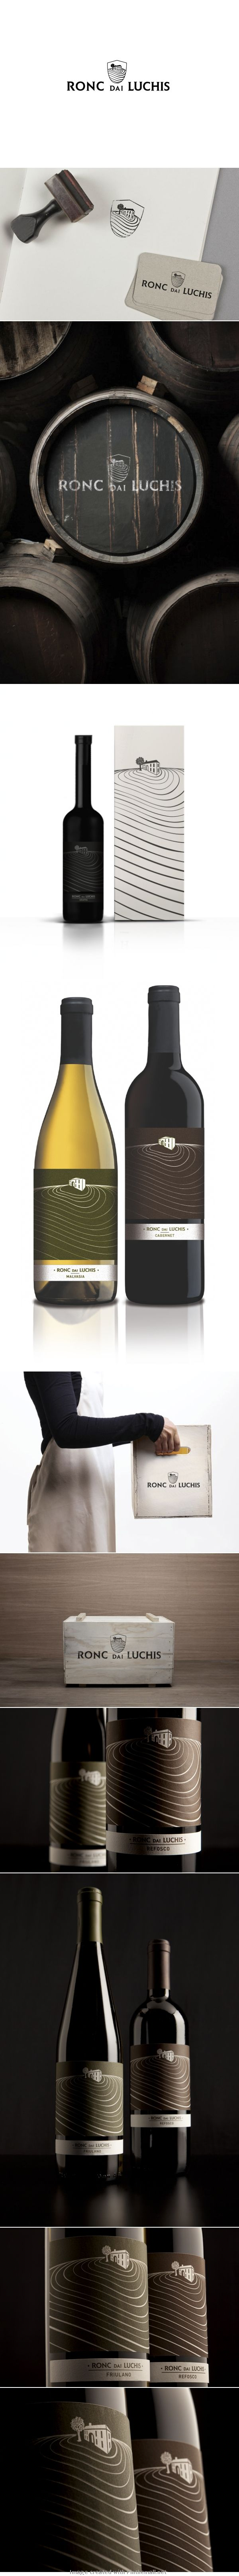 Ron Dai Luchis #branding and #packaging